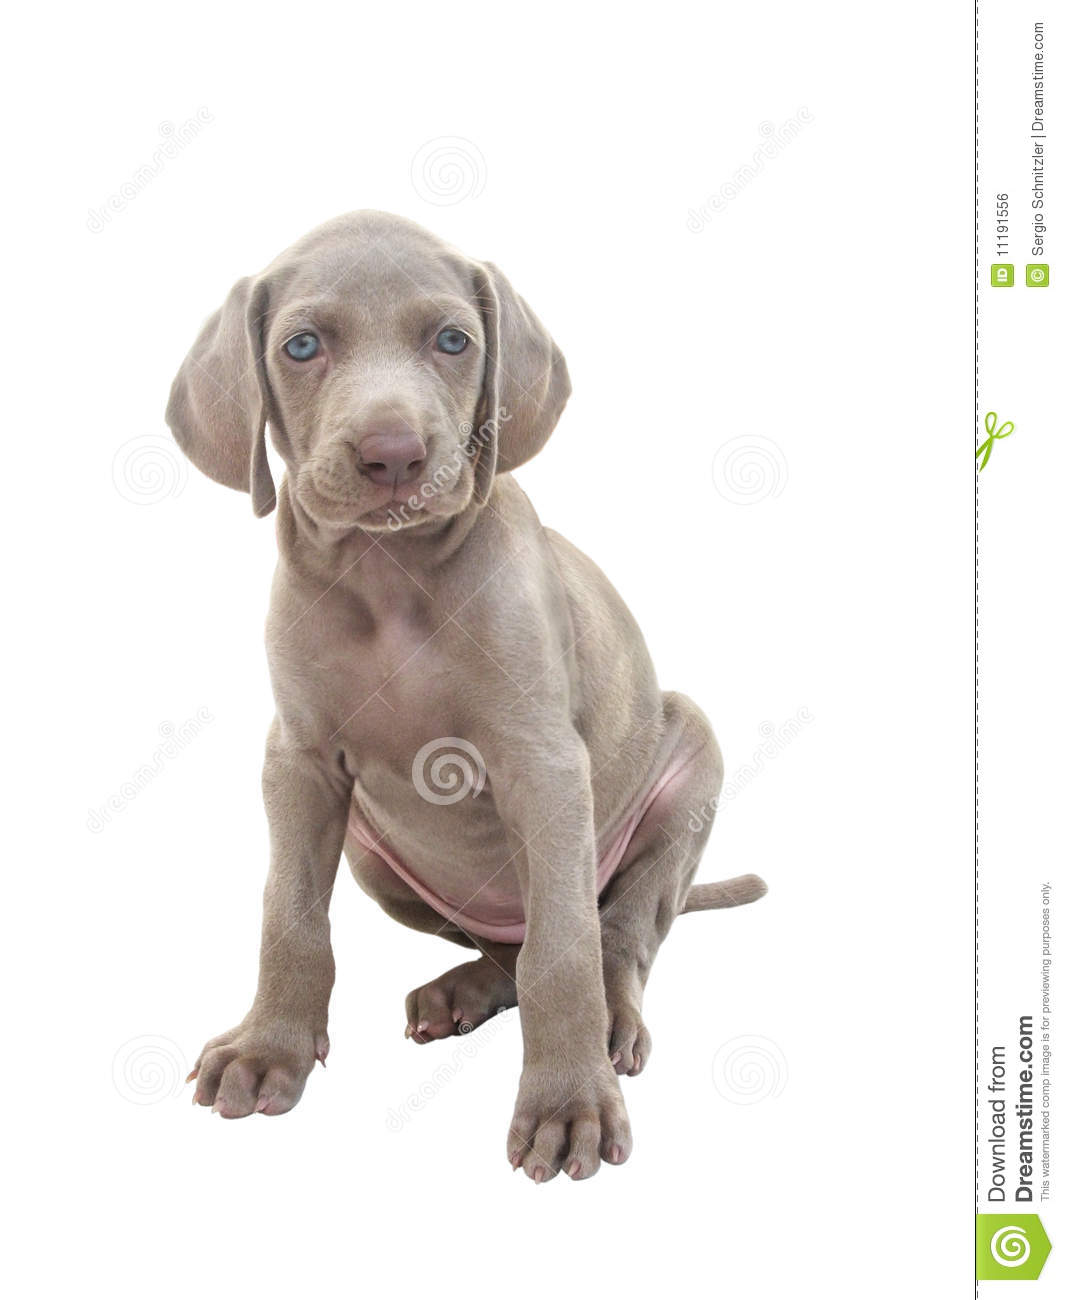 Weimaraner Dog Puppy For Sale